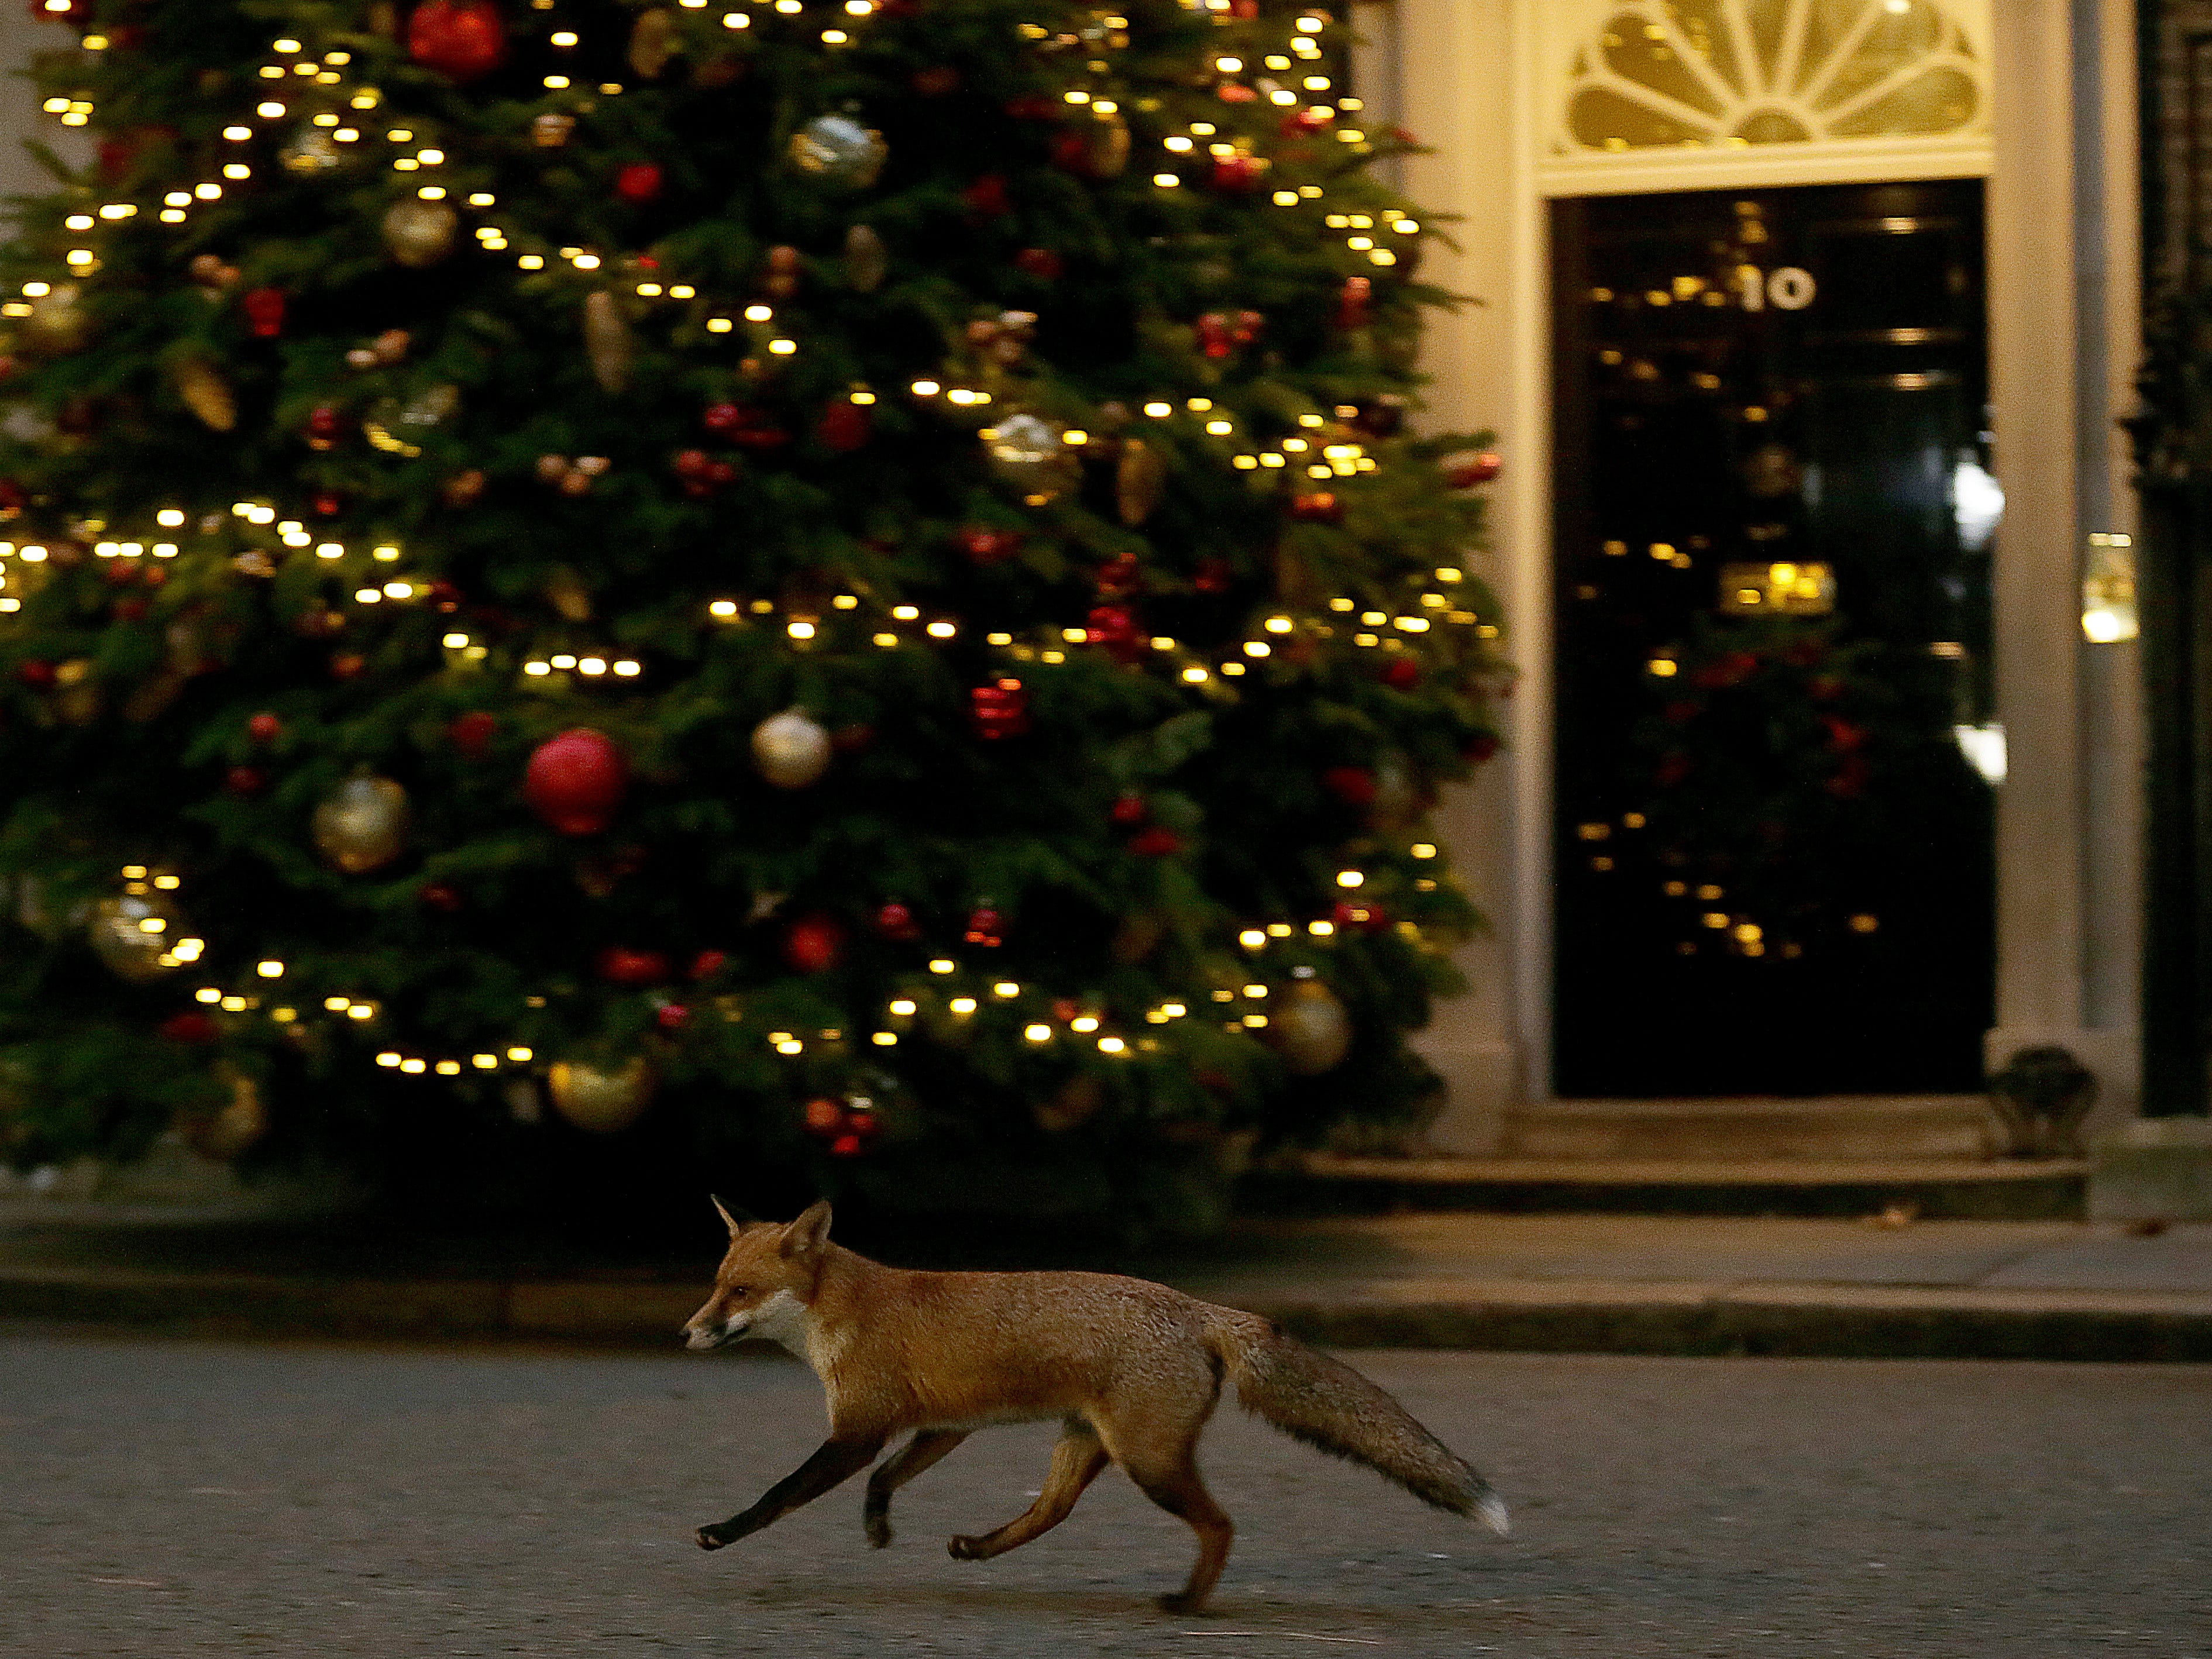 A fox runs past 10 Downing Street, in London, Monday Dec. 10, 2018. British Prime Minister Theresa May on Monday postponed Parliament's vote on her Brexit deal with the European Union, acknowledging that lawmakers would have rejected it by a significant margin.